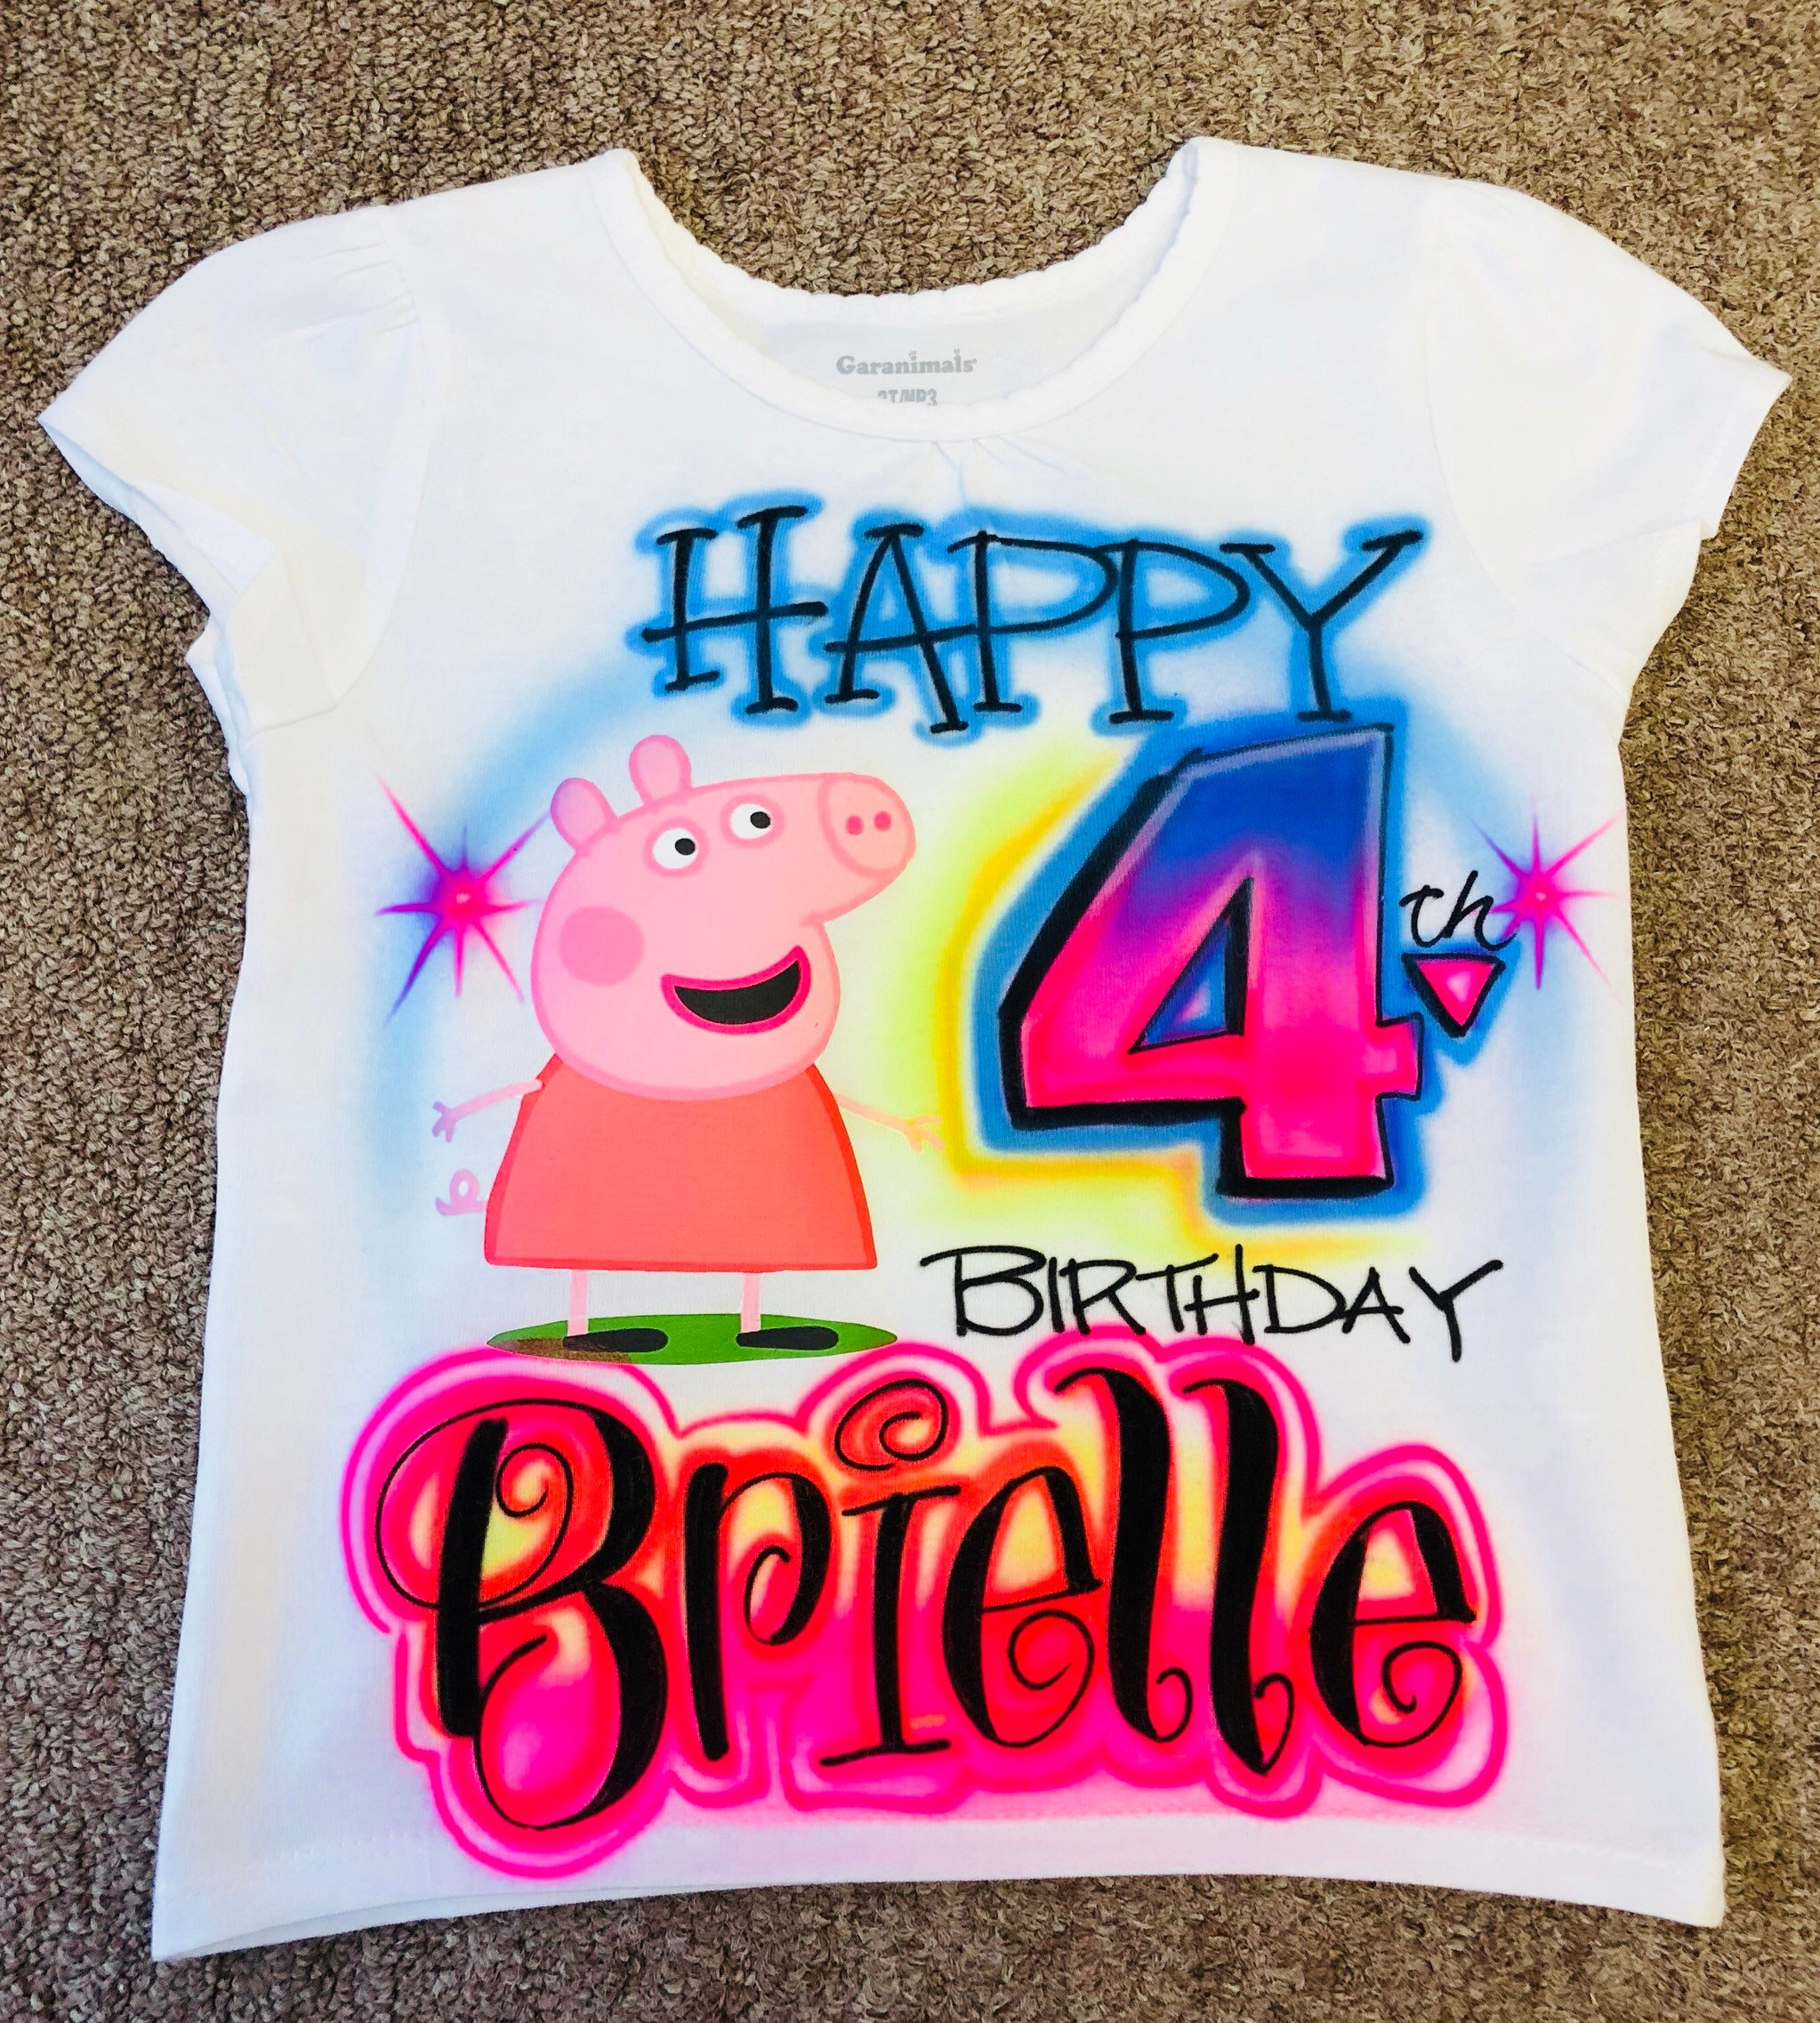 Peppa Pig Birthday Shirts For Family Toffee Art